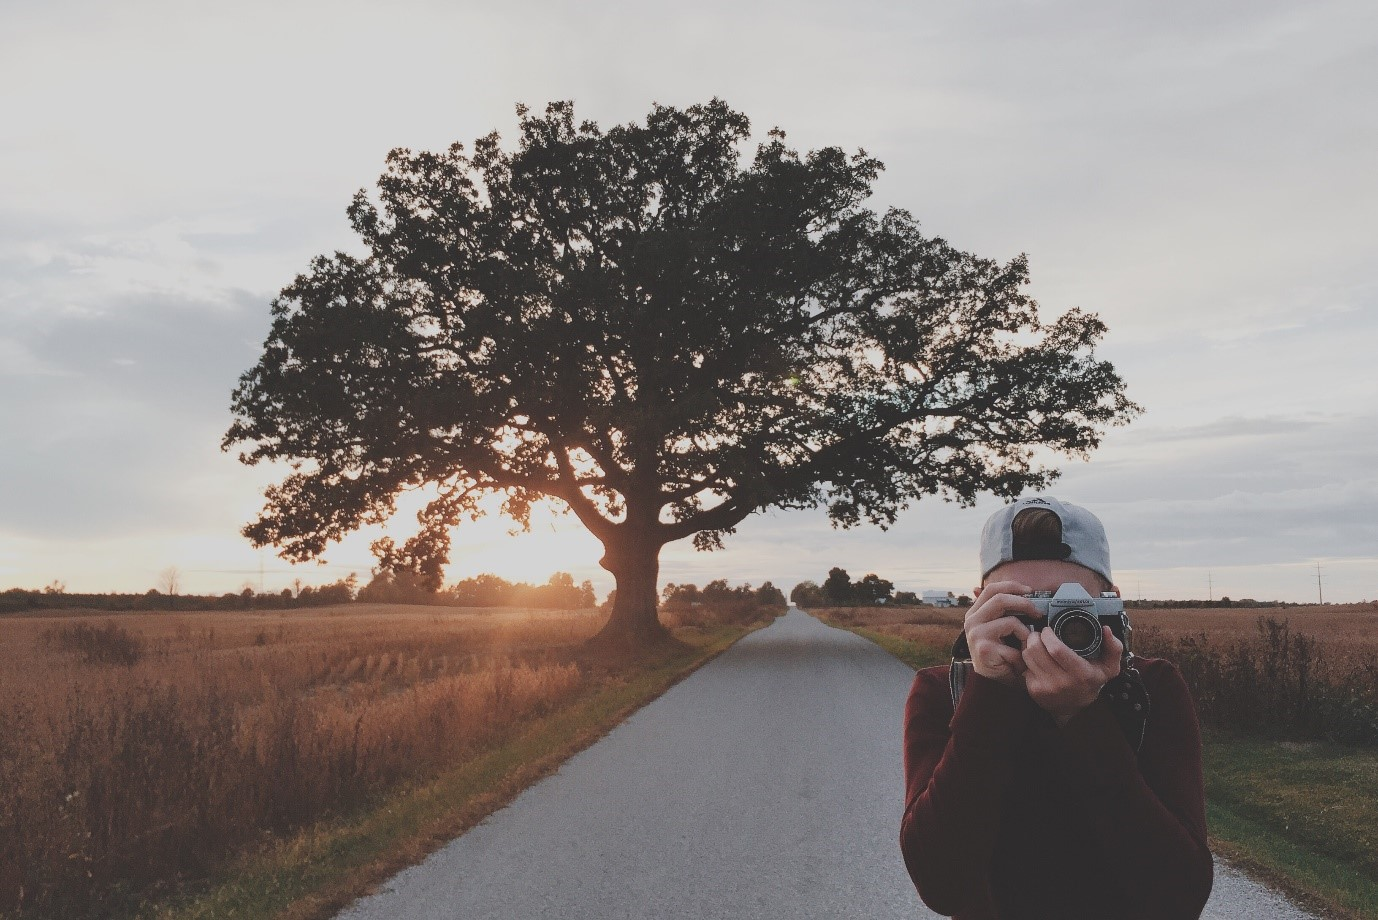 How to take good photos – man takes photo as sun sets